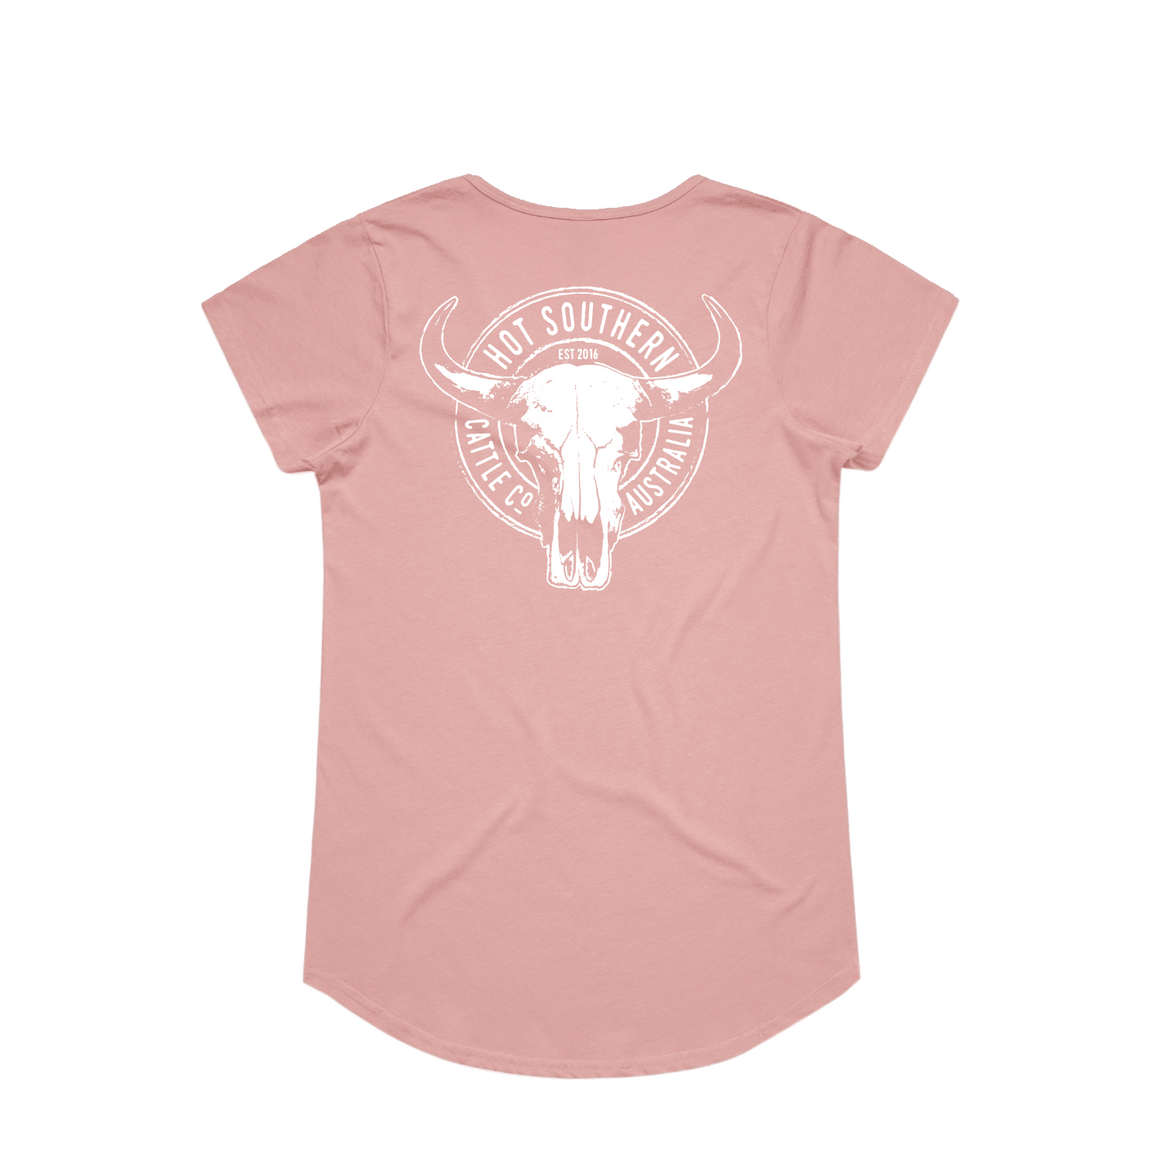 Hot Southern Cattle Co Dusty Pink Womens Scoop T-Shirt